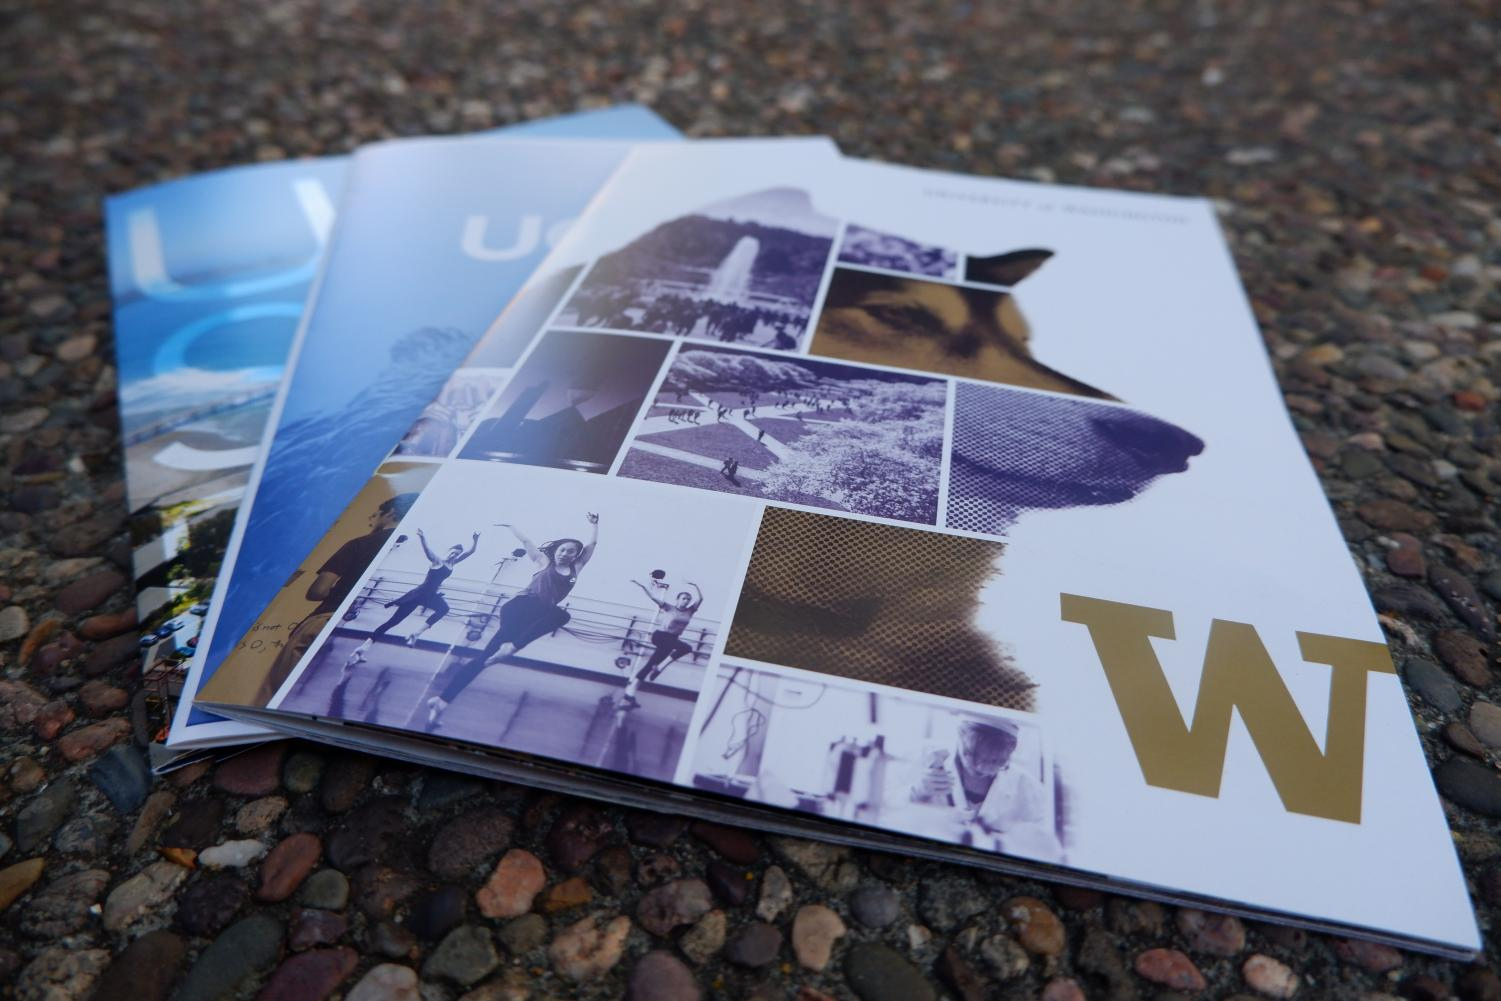 Visiting colleges such as the University of Washington, the University of California, Los Angeles, and the University of California, San Diego handed out informational brochures to Woodside students.